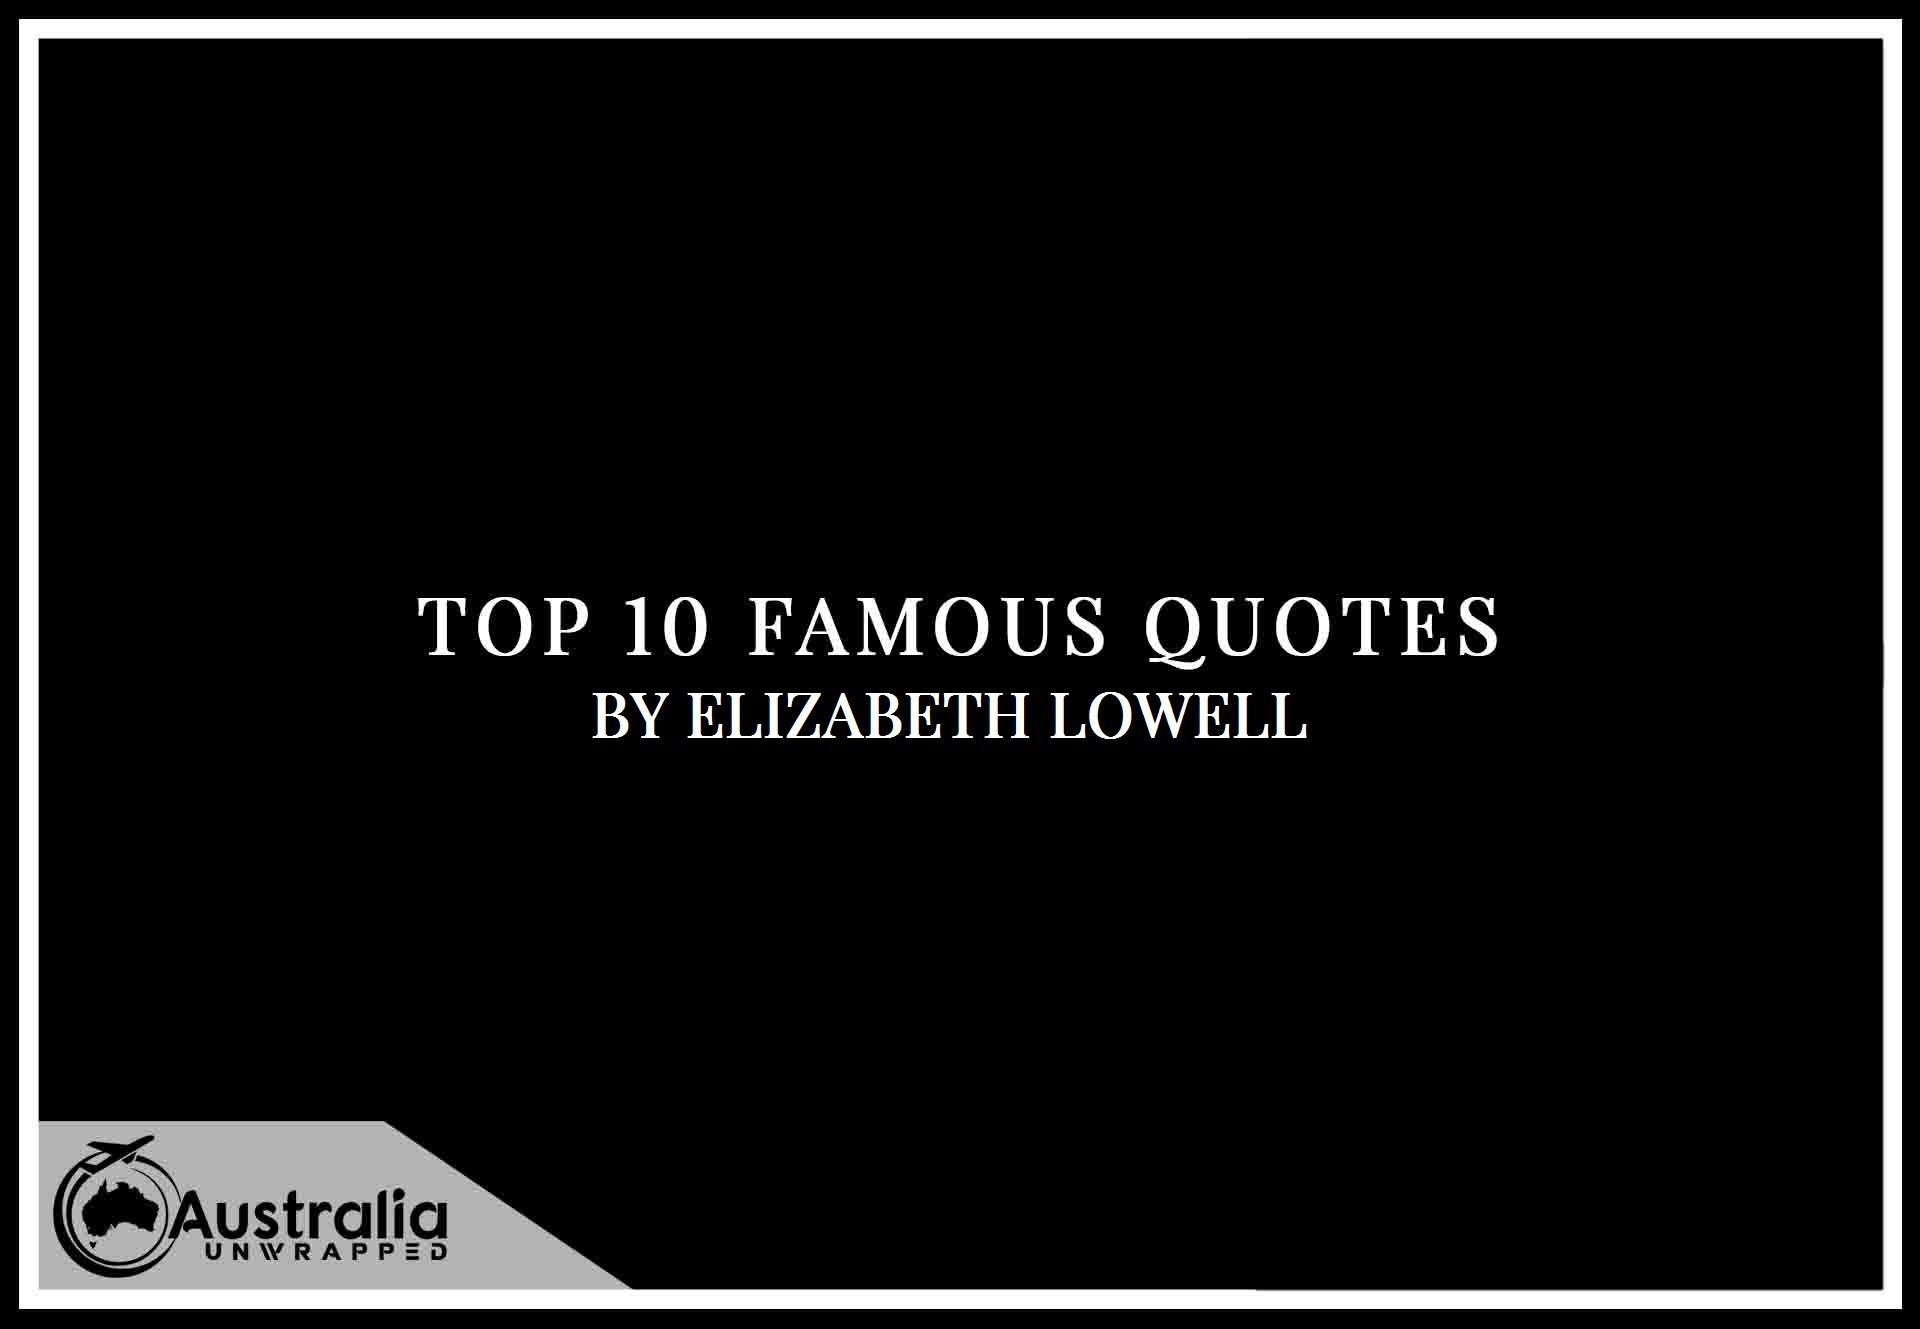 Elizabeth Lowell's Top 10 Popular and Famous Quotes